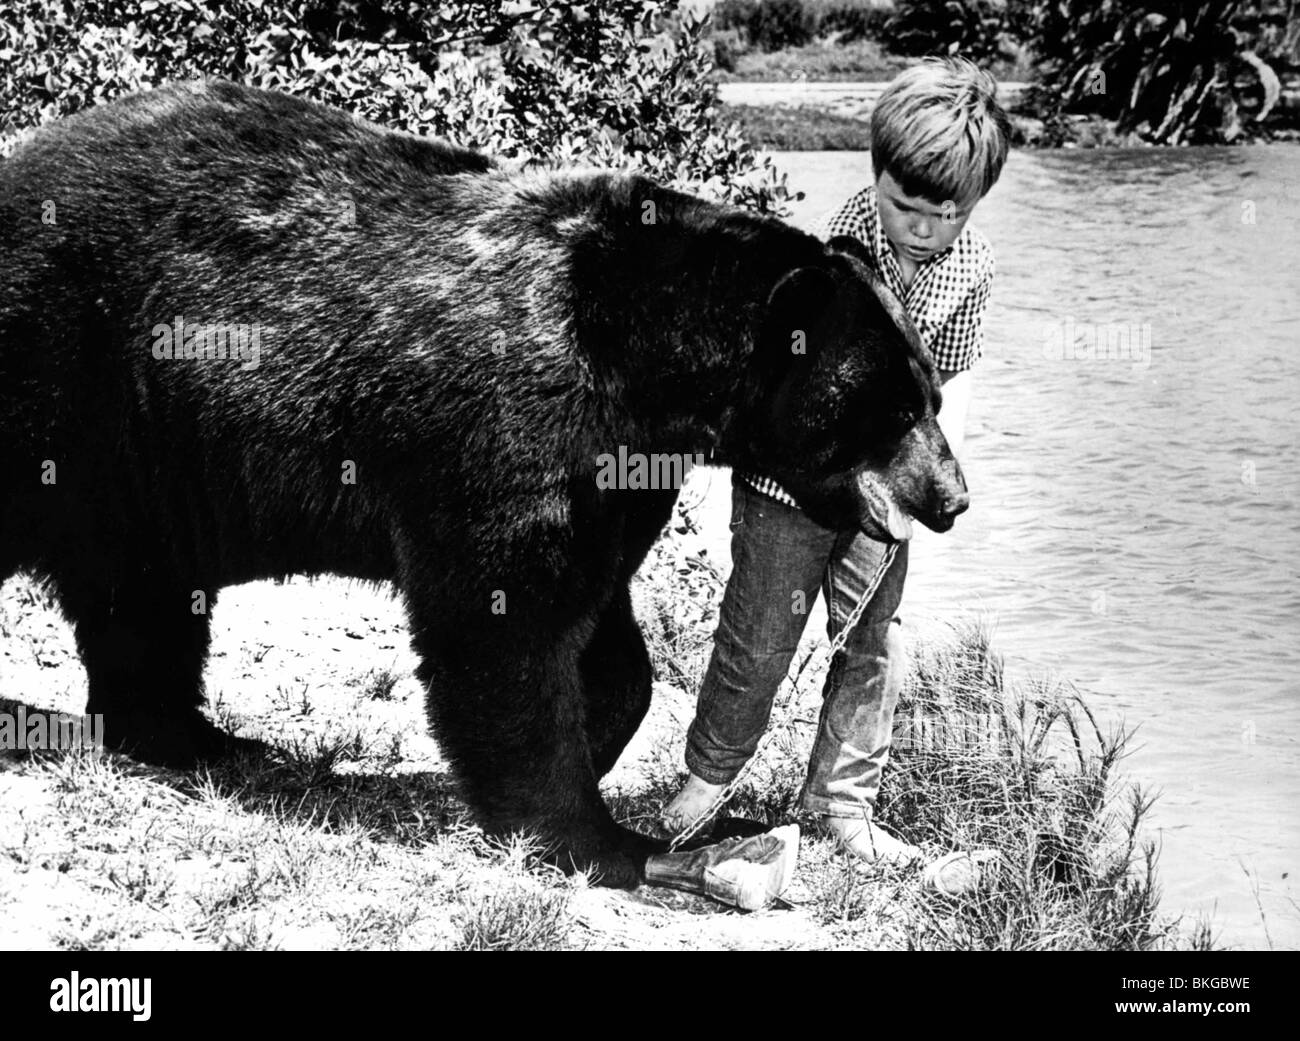 GENTLE BEN (TV) CLINT HOWARD - Stock Image